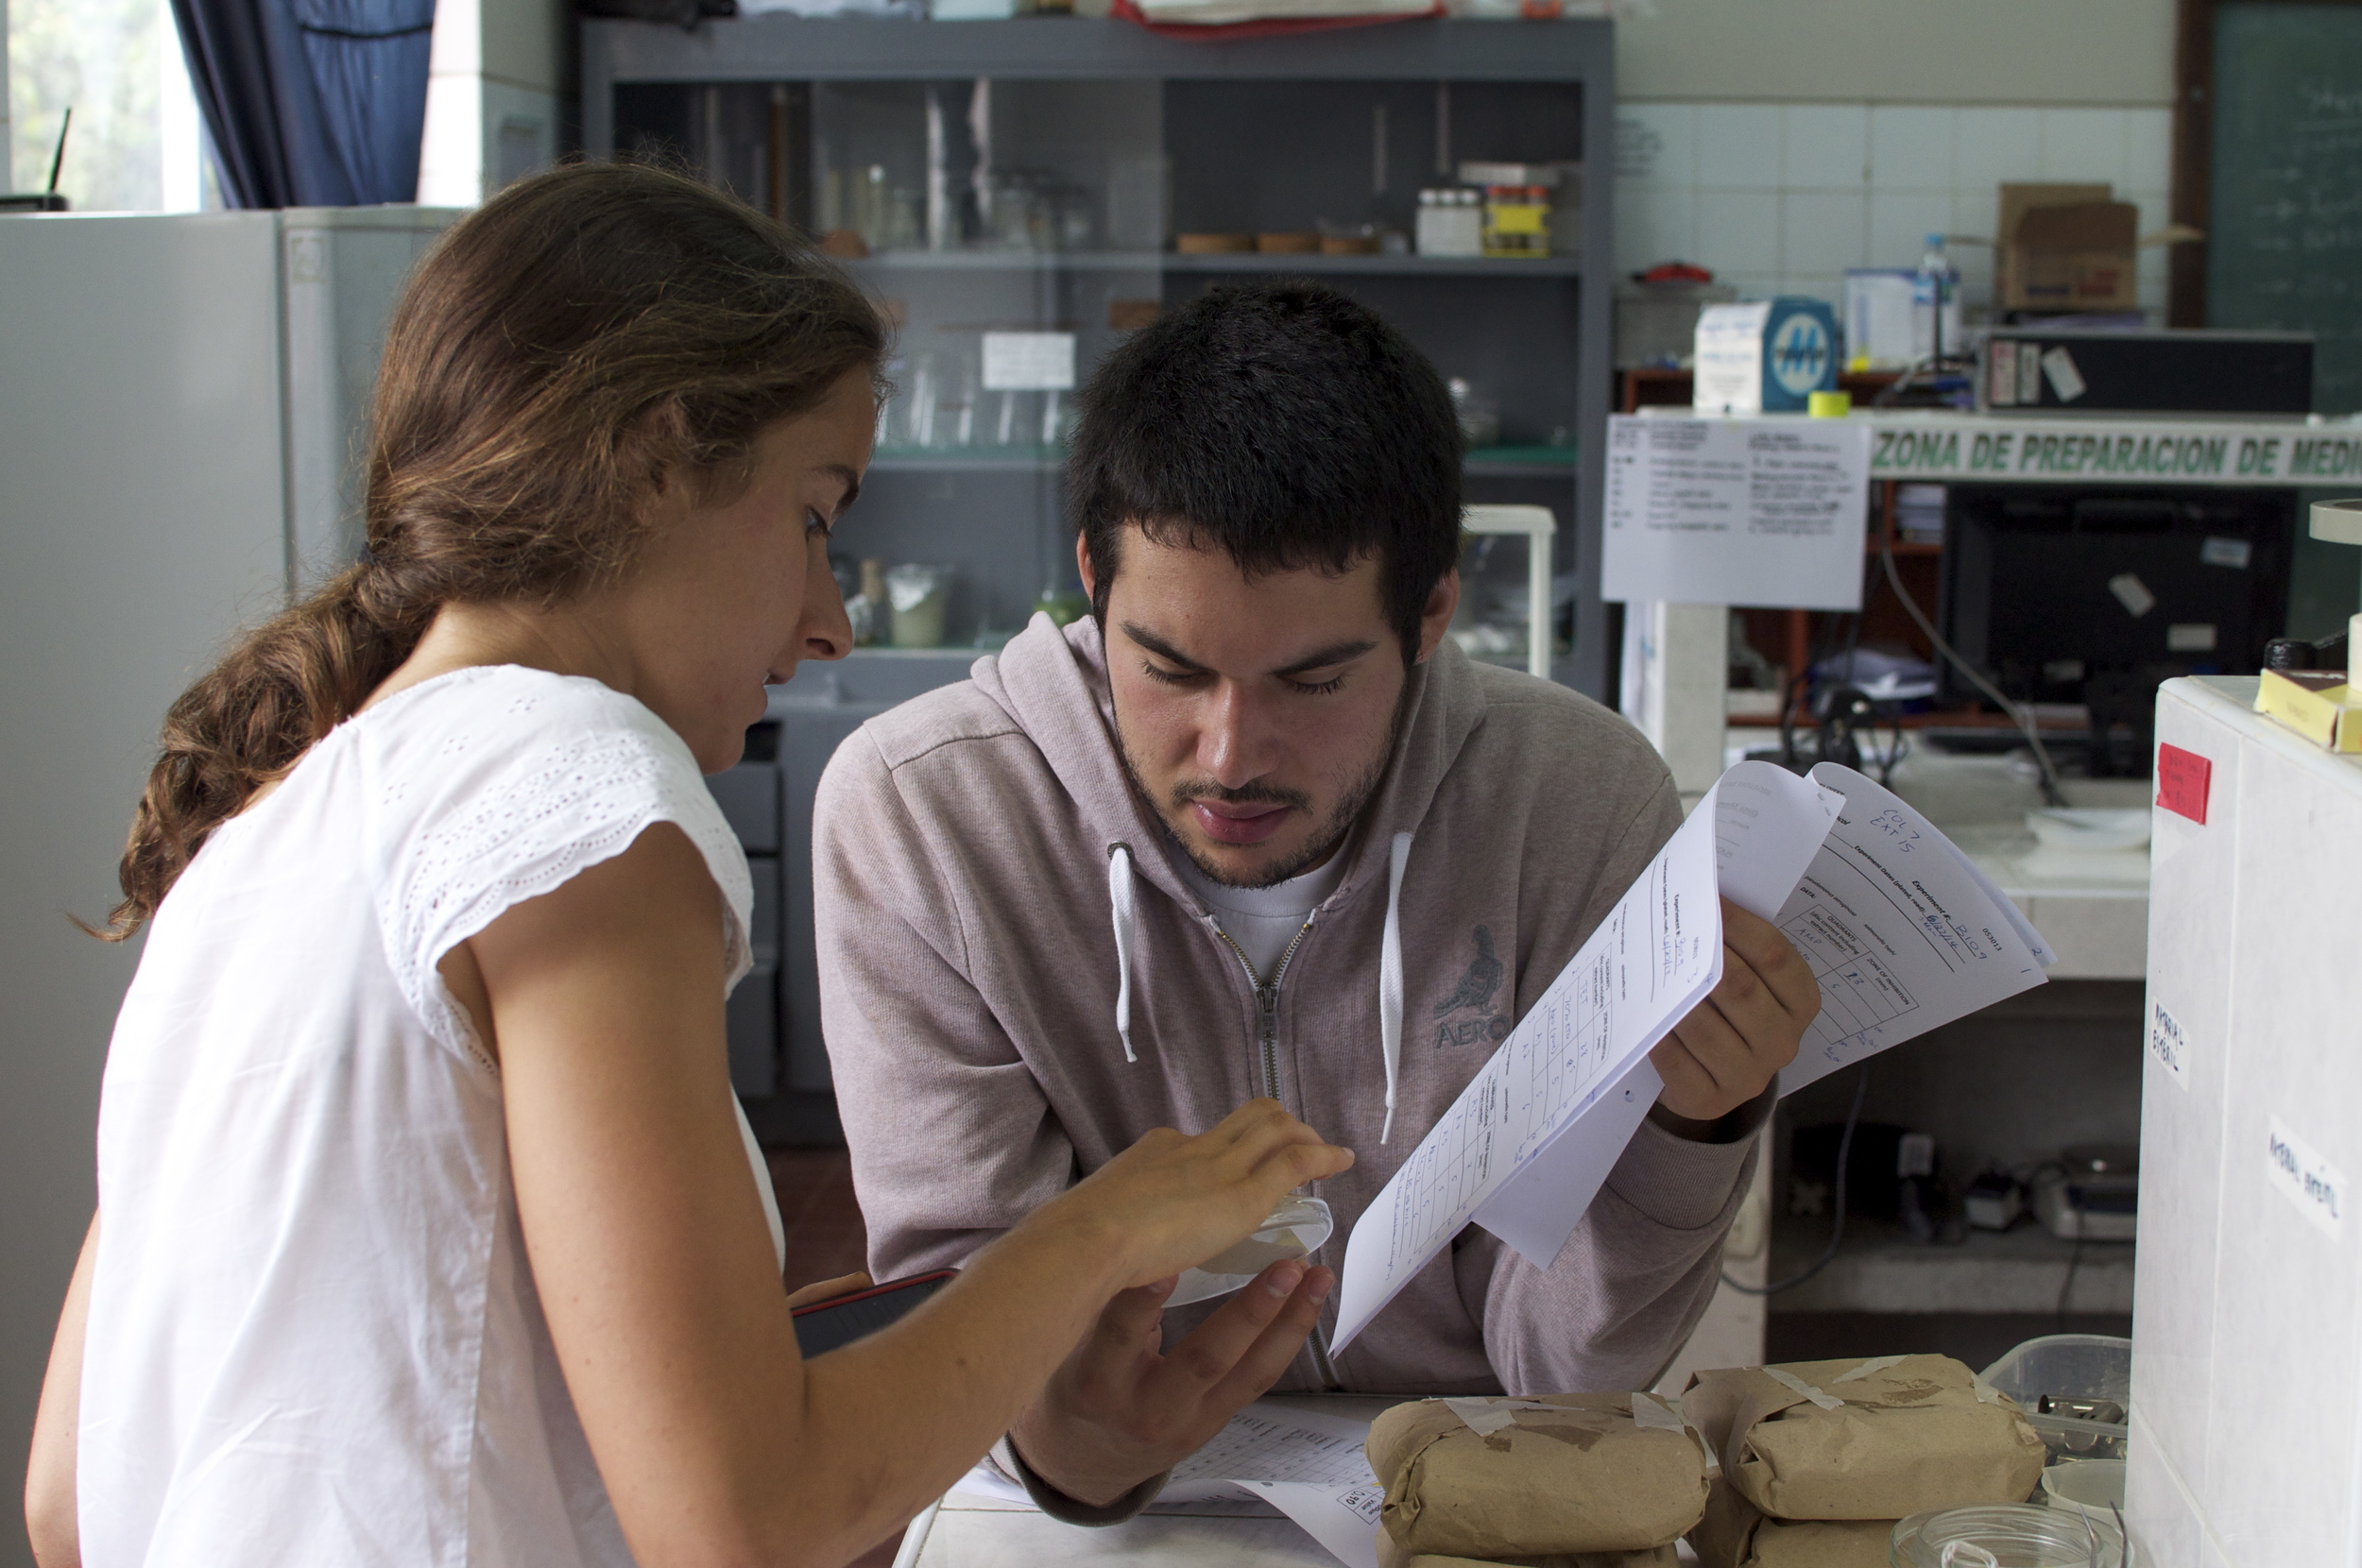 Summer 2014 - MHIRT student Abel Arellano works with with Carolyn Gigot, a Harvard student working in the UNT lab, to see if Peruvian medicinal plants have antibacterial properties.